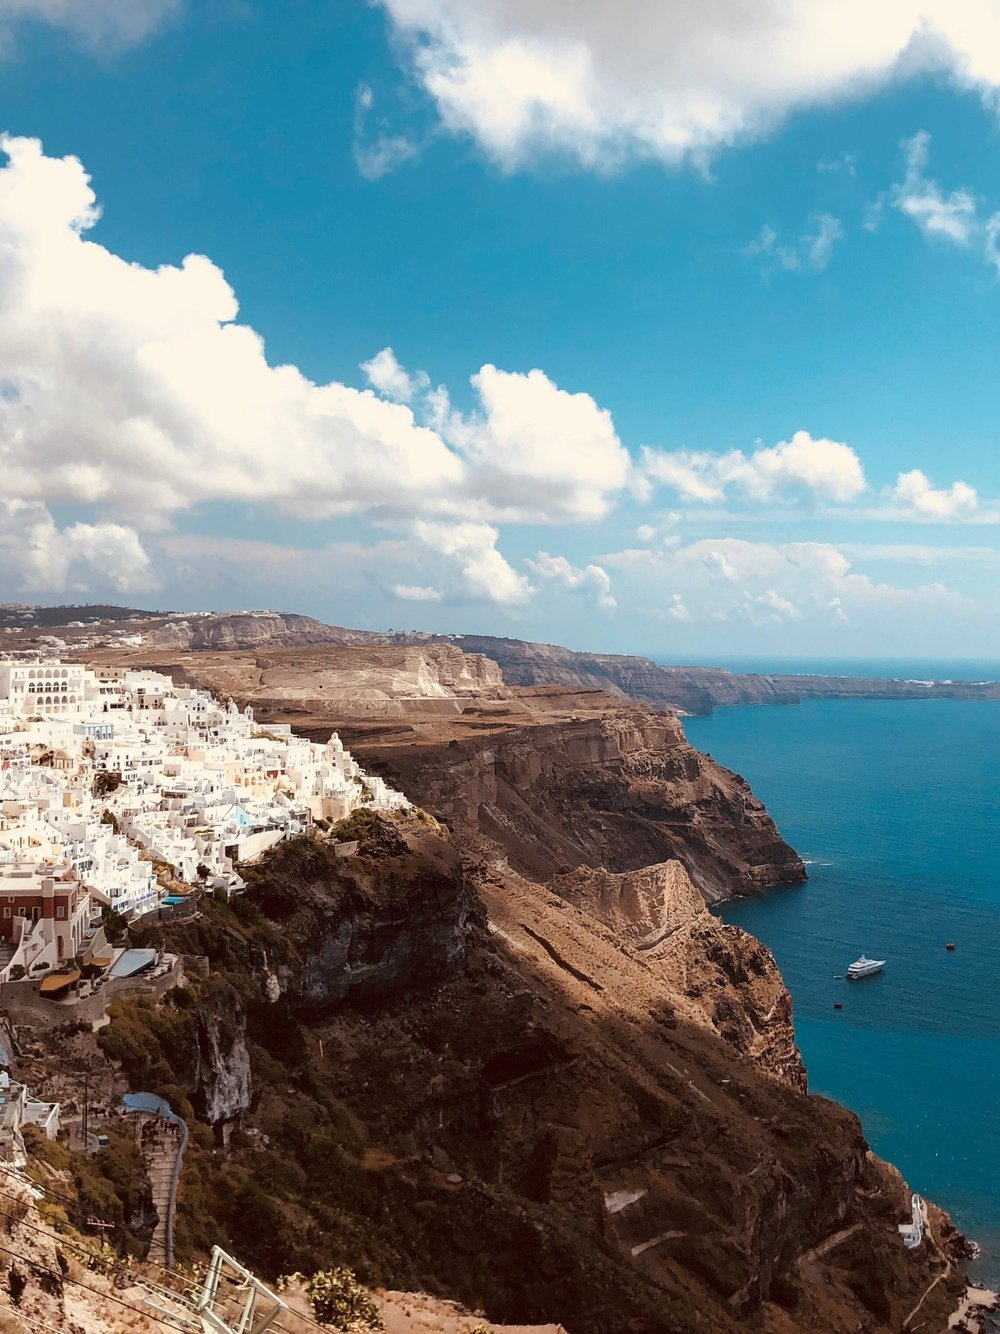 before you go... - Don't expect to find an extensive range of activities or dining options here. As it is about a two hour trek from Oia, it's close enough to Fira that it's worth the walk for oustanding caldera views and visibility to other picturesque architecture.